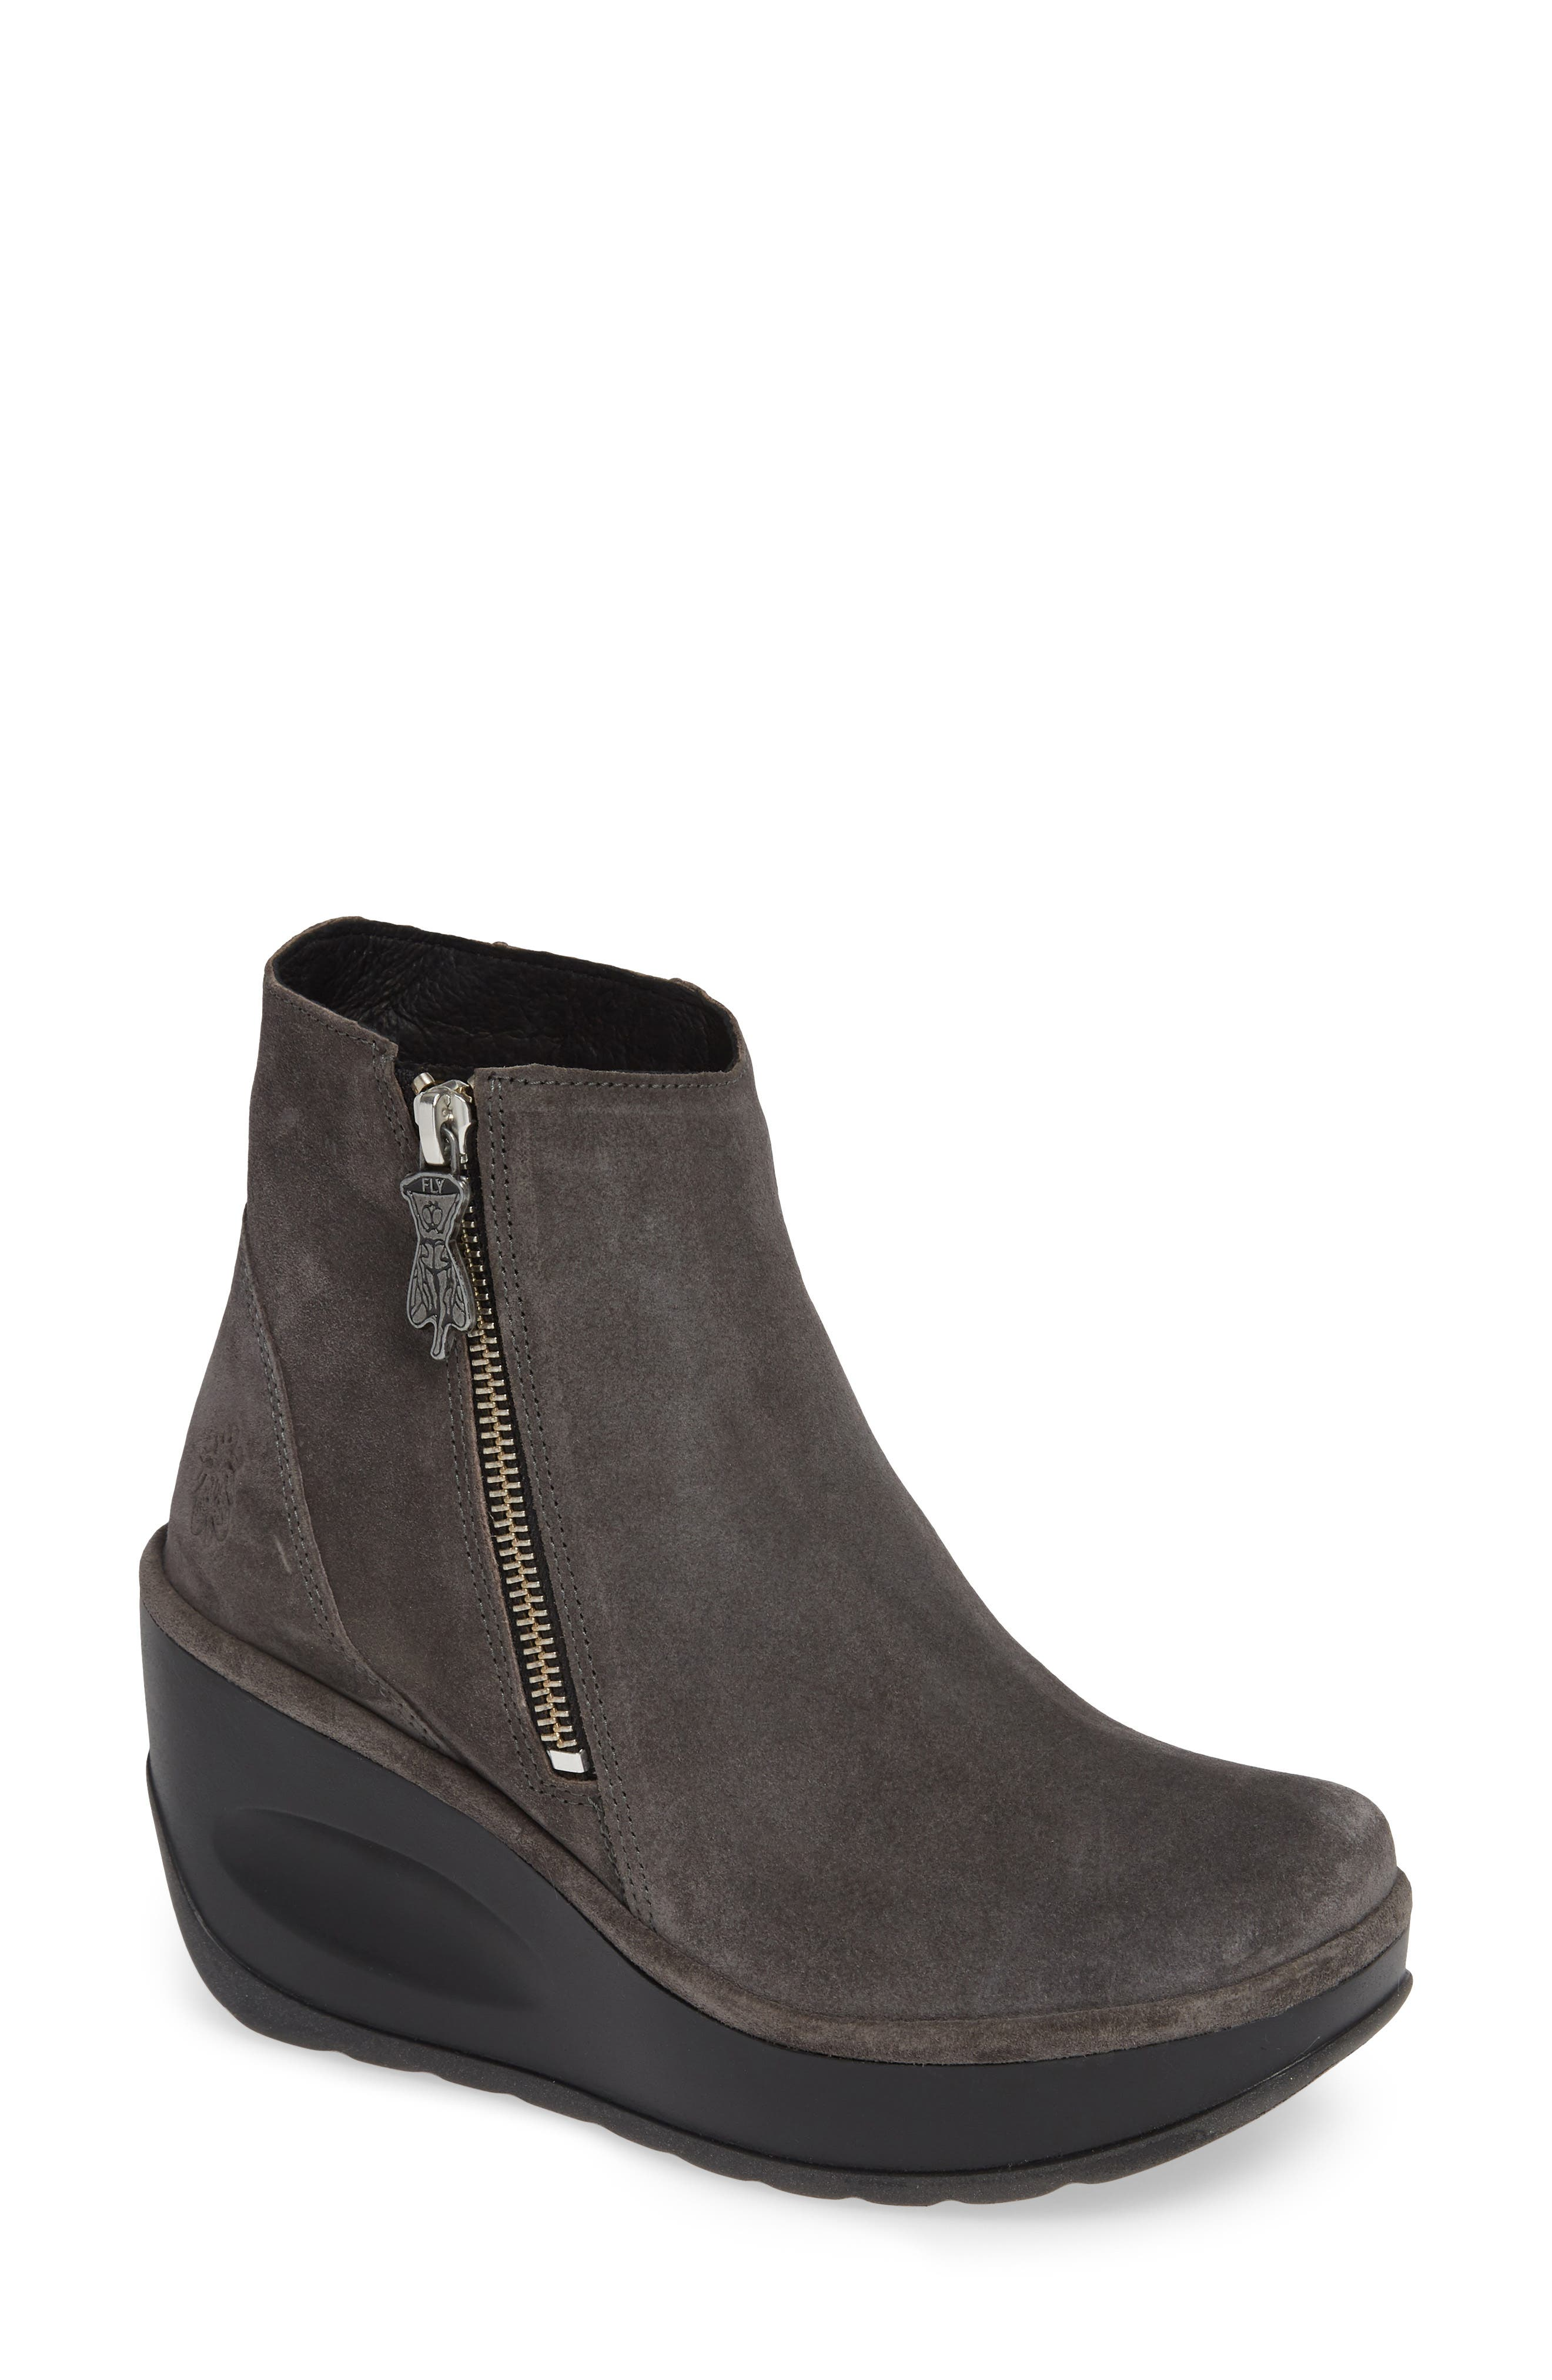 Fly London Jome Bootie, Grey